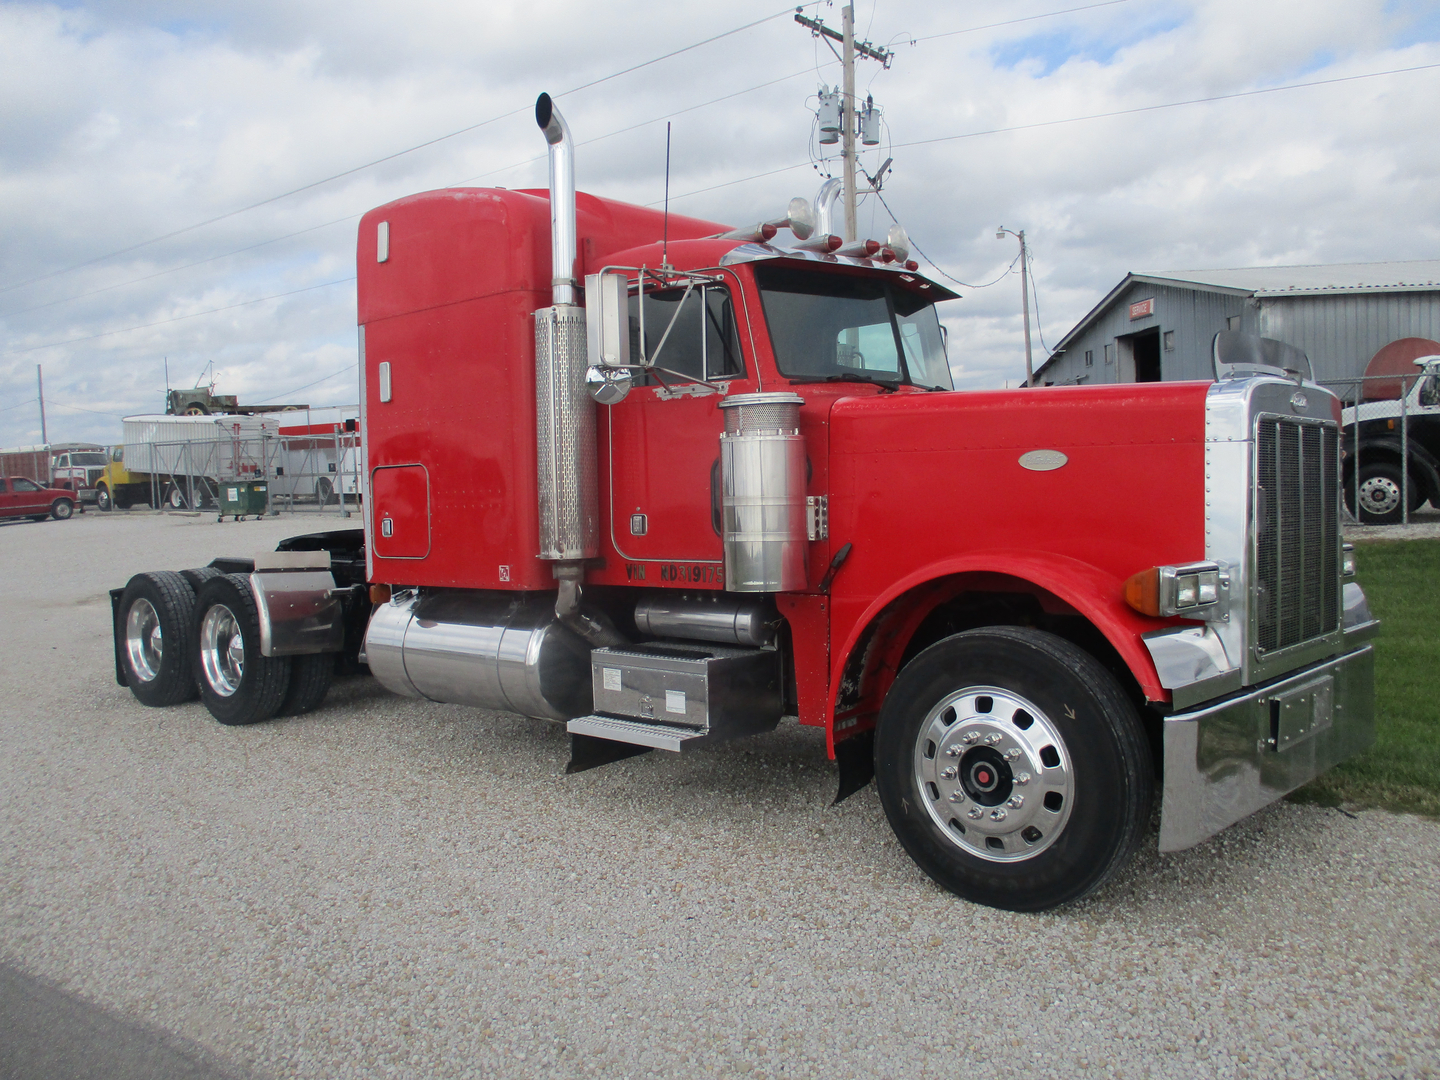 1998 International 4700, DT 466 E 230 HP, Allison automatic, air brakes,  power steering, double frame, air conditioning, stainless mirrors, 12 front  axle, ...